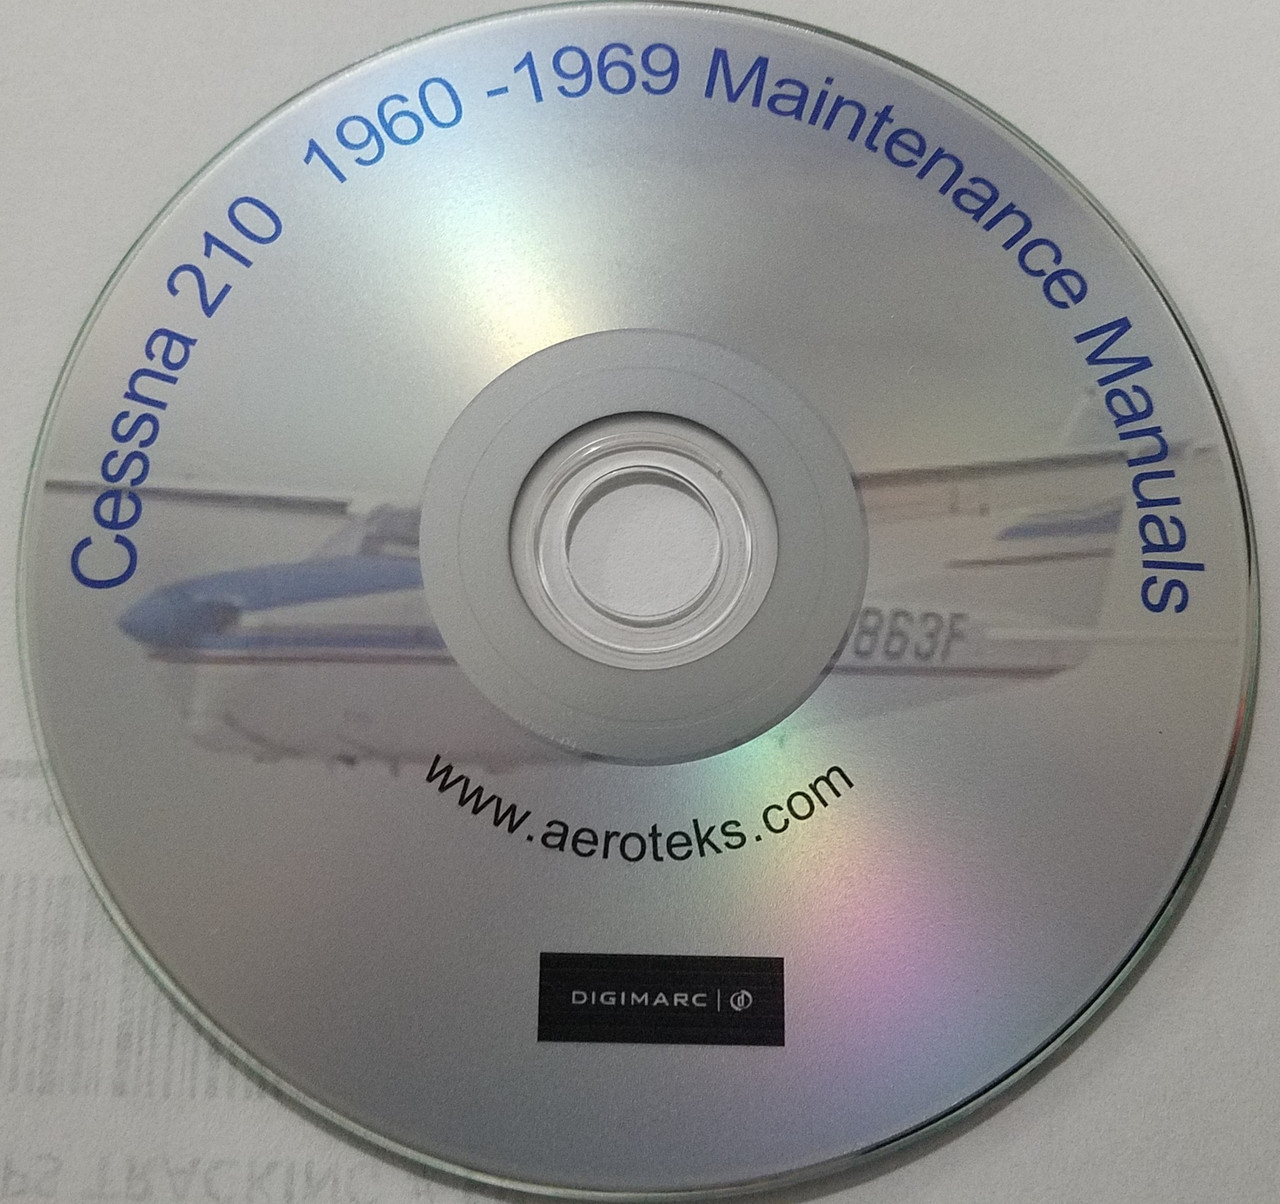 Cessna Aircraft Maintenance Service manuals